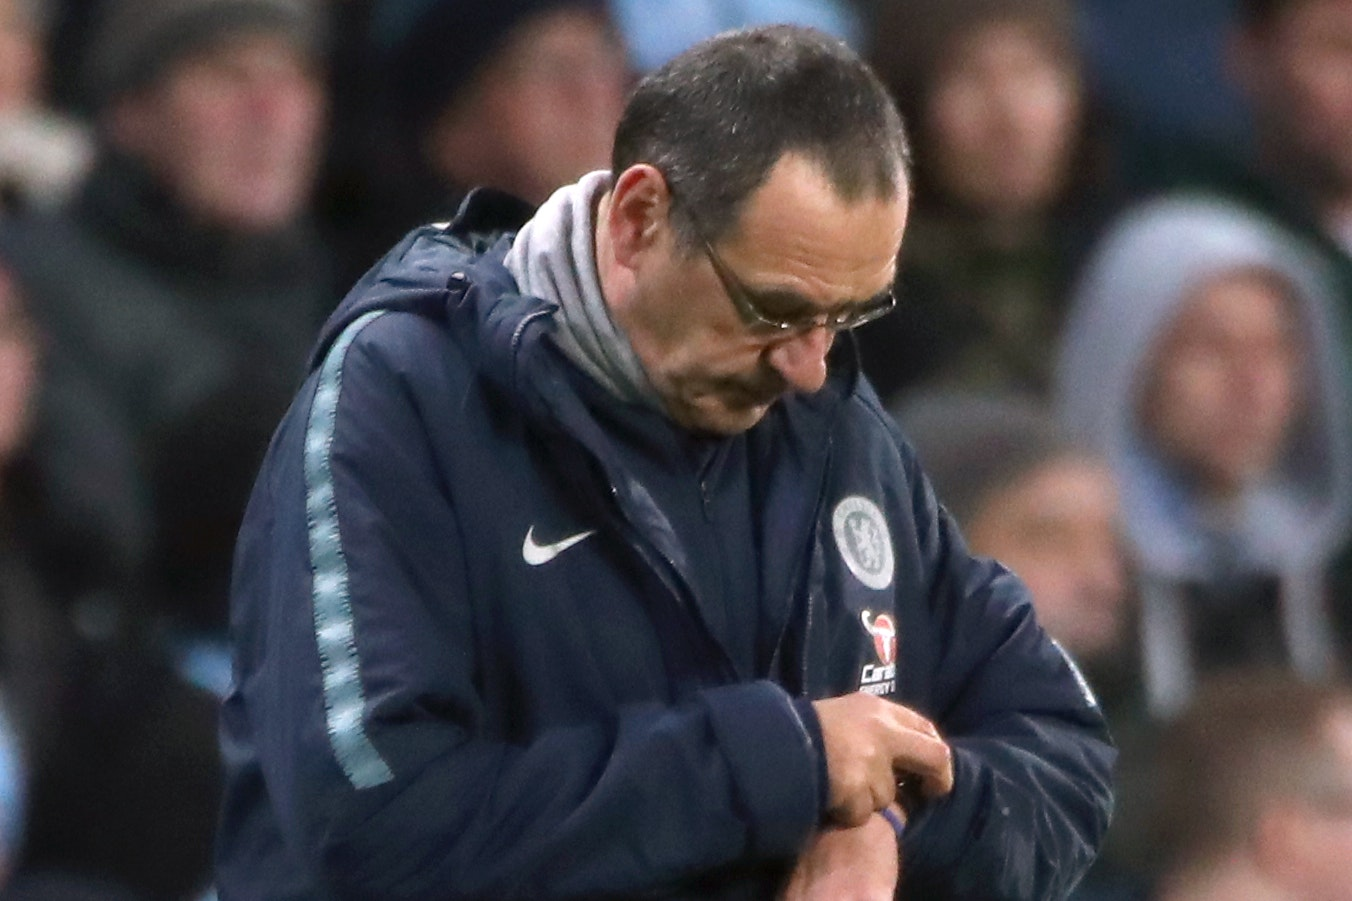 Maurizio Sarri's position as Chelsea head coach faces scrutiny following the humiliating loss at Manchester City